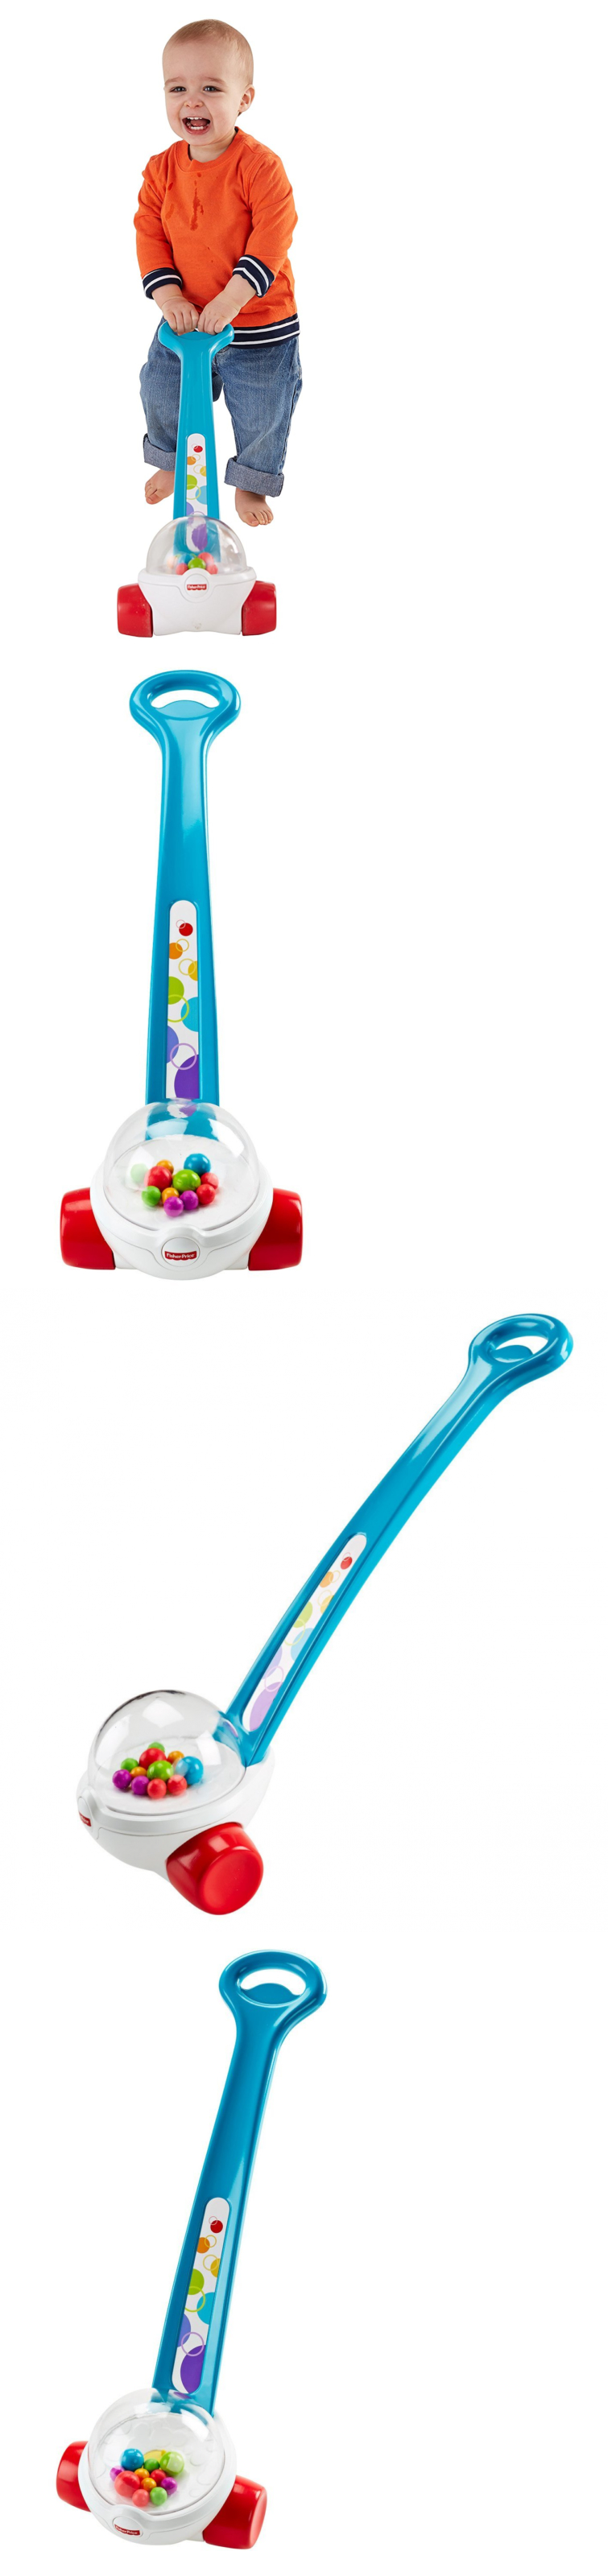 Other Fisher Price Pre 1963 2529 Corn Popper Toy Toddler Baby